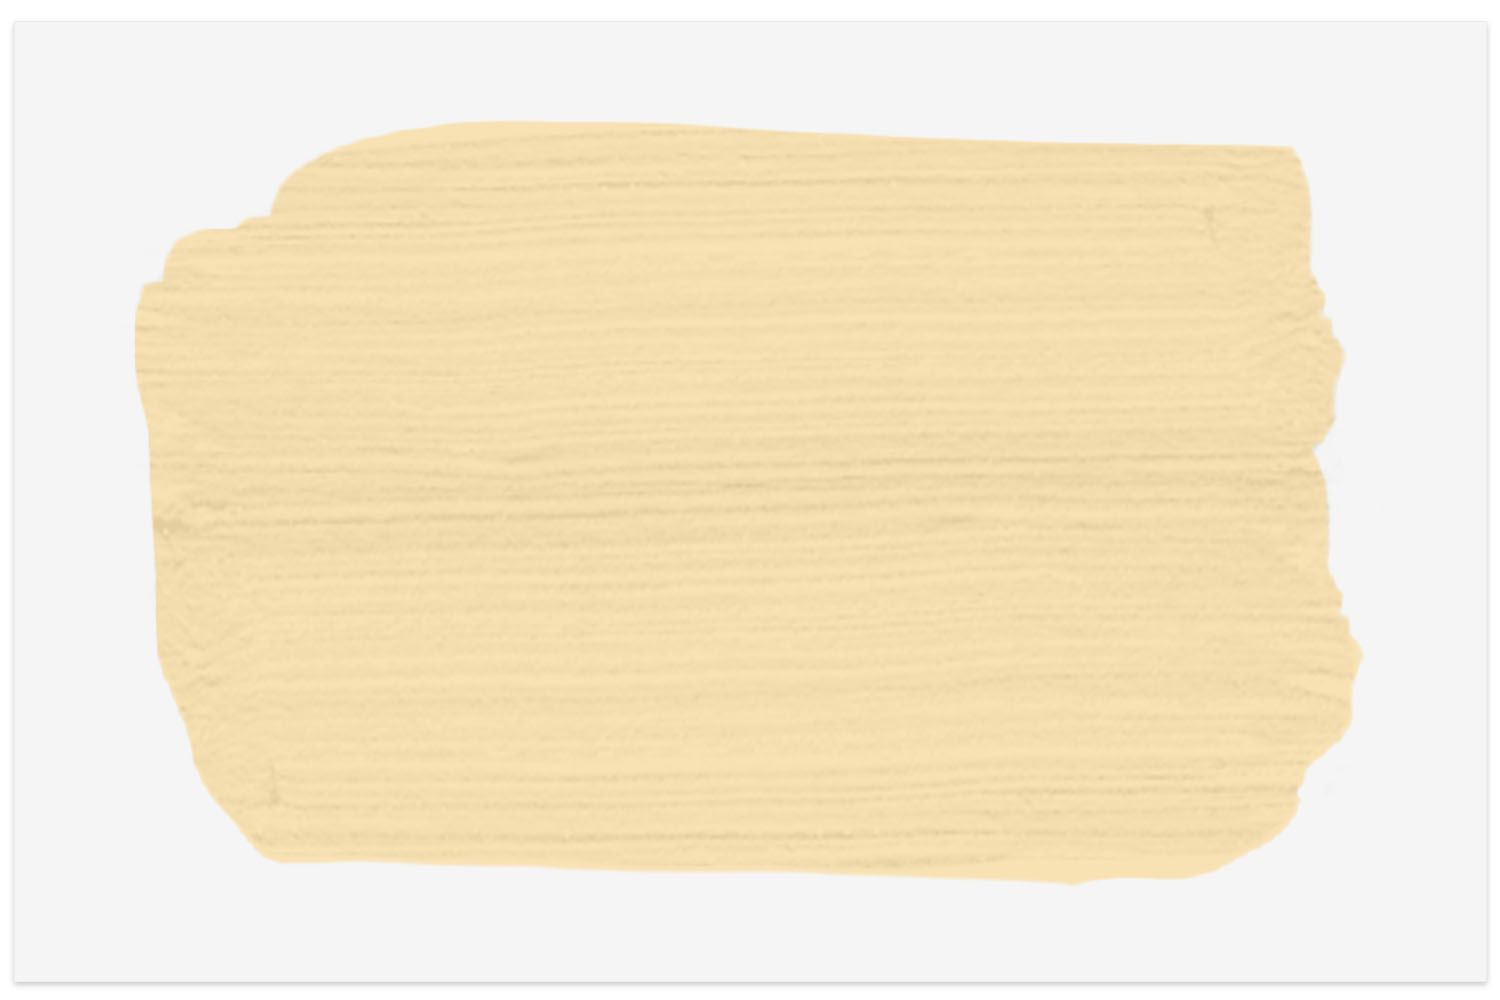 The Spruce paint swatch color in Sundream